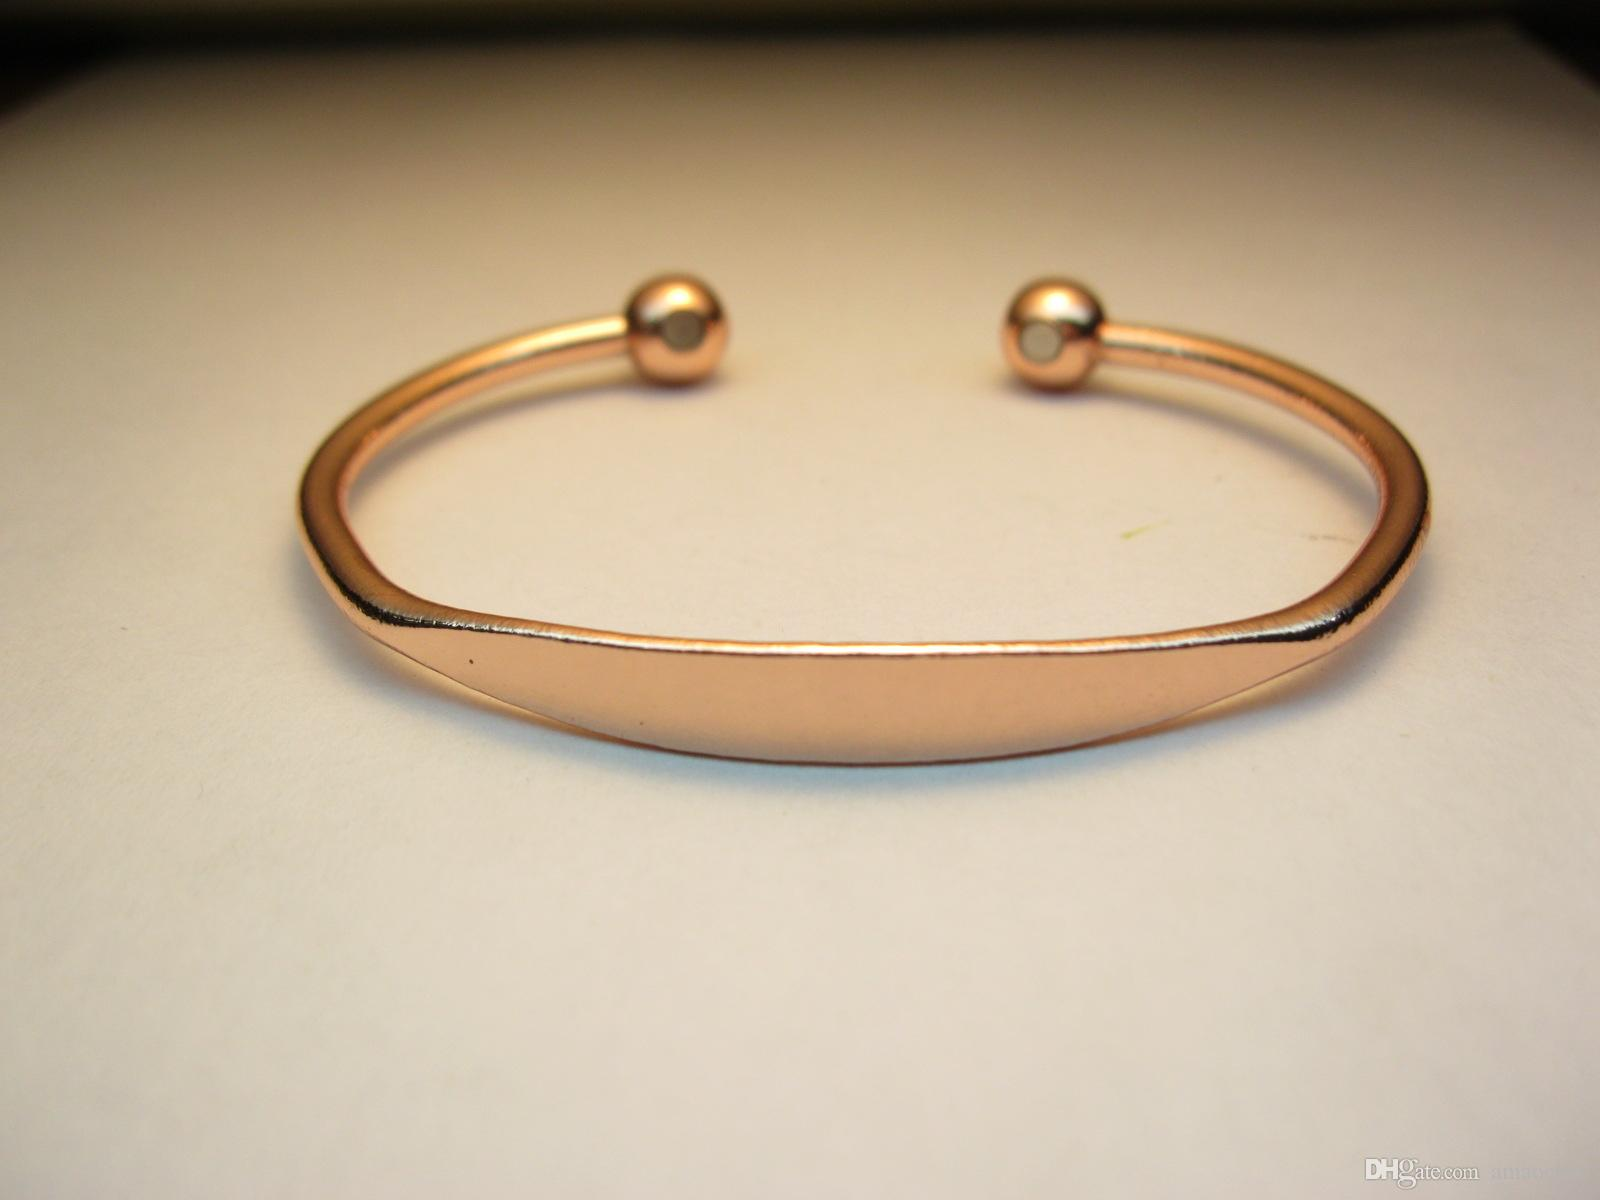 format silver with sterling bangle set bangles hoops and bracelets gold handmade solid bracelet